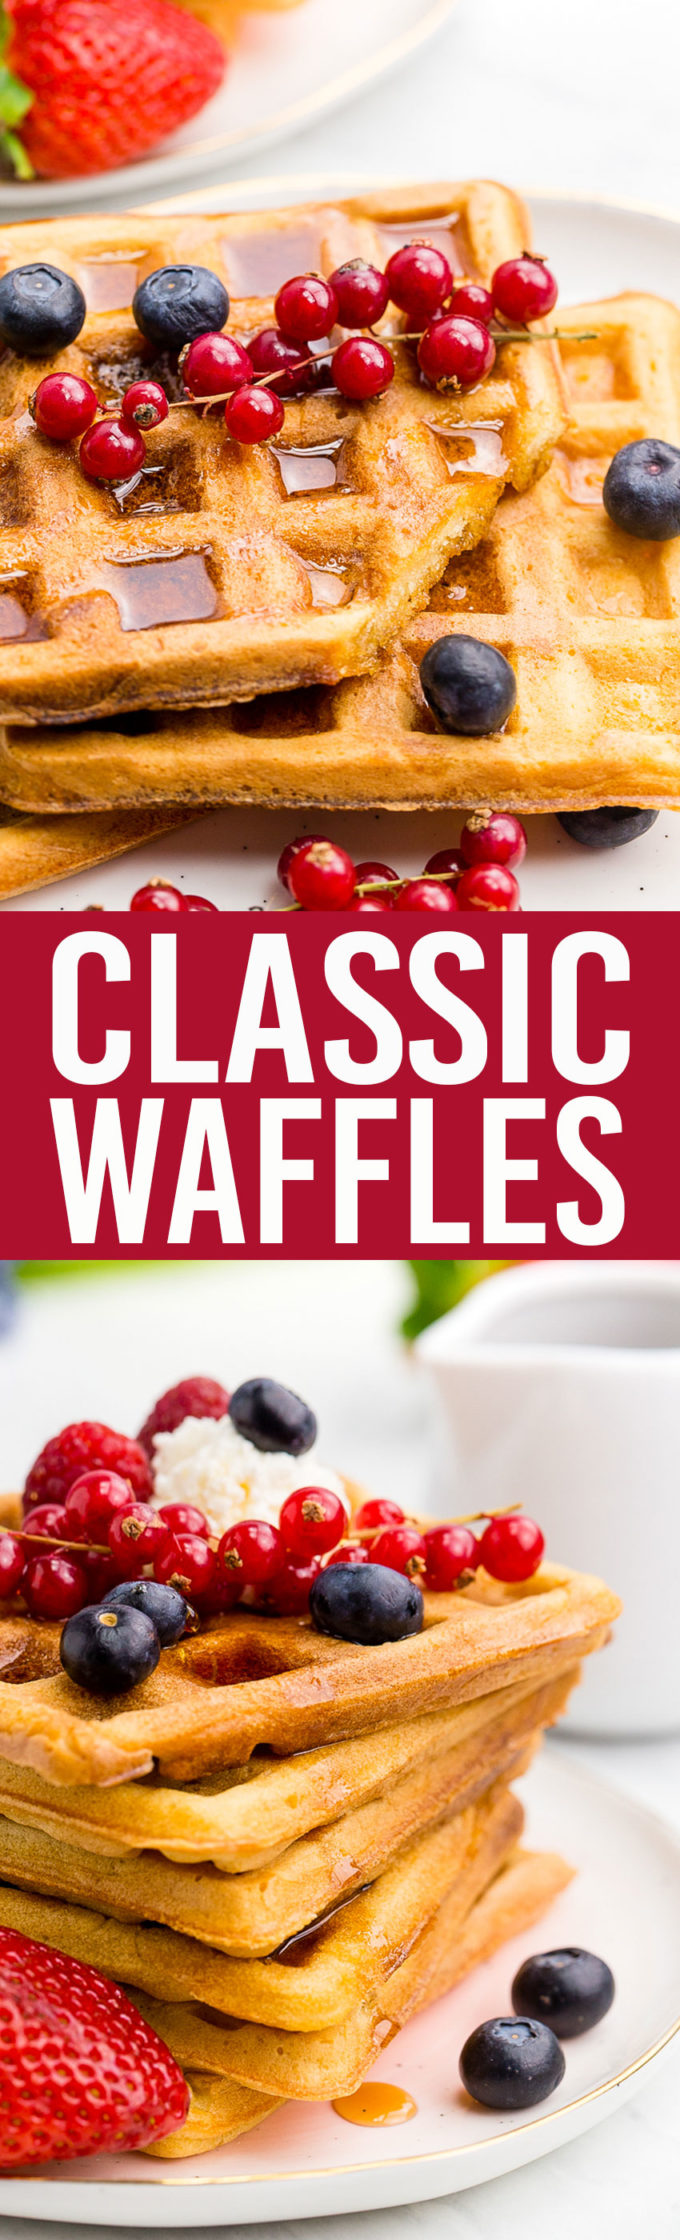 This Classic Waffles recipe is amazing, crispy exterior, tender fluffy interior. Yum.